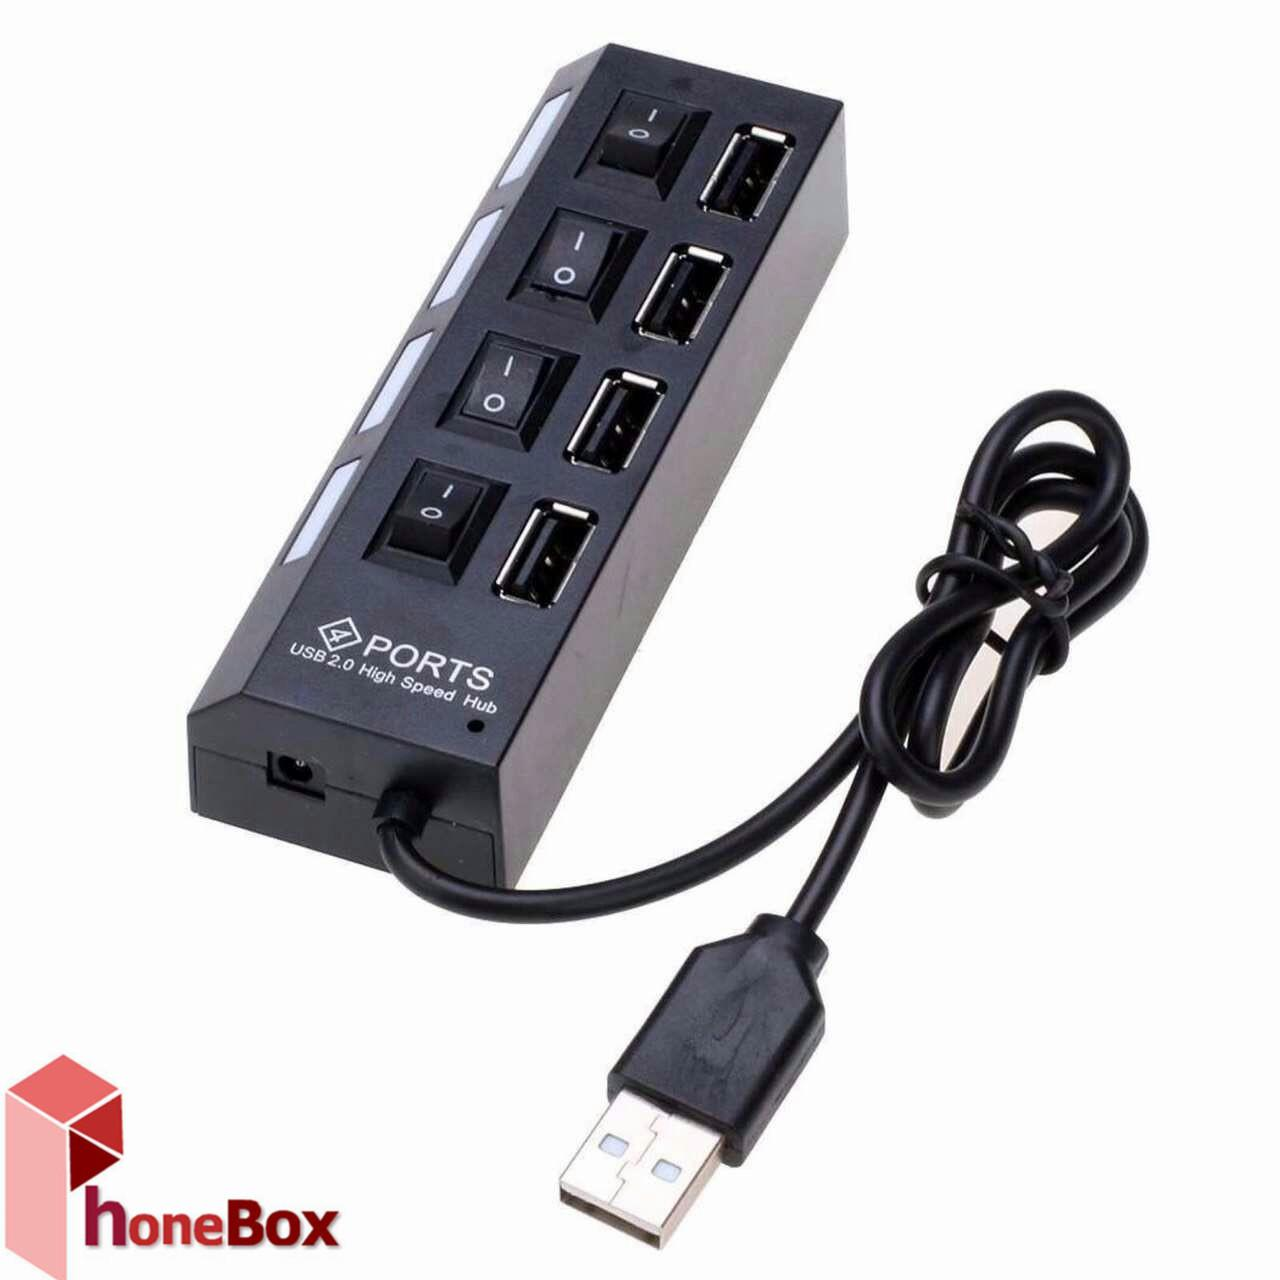 Usb Hub For Sale Port Prices Brands Specs In 7 20 4ports Speed With On Off Switch And Cable Universal High